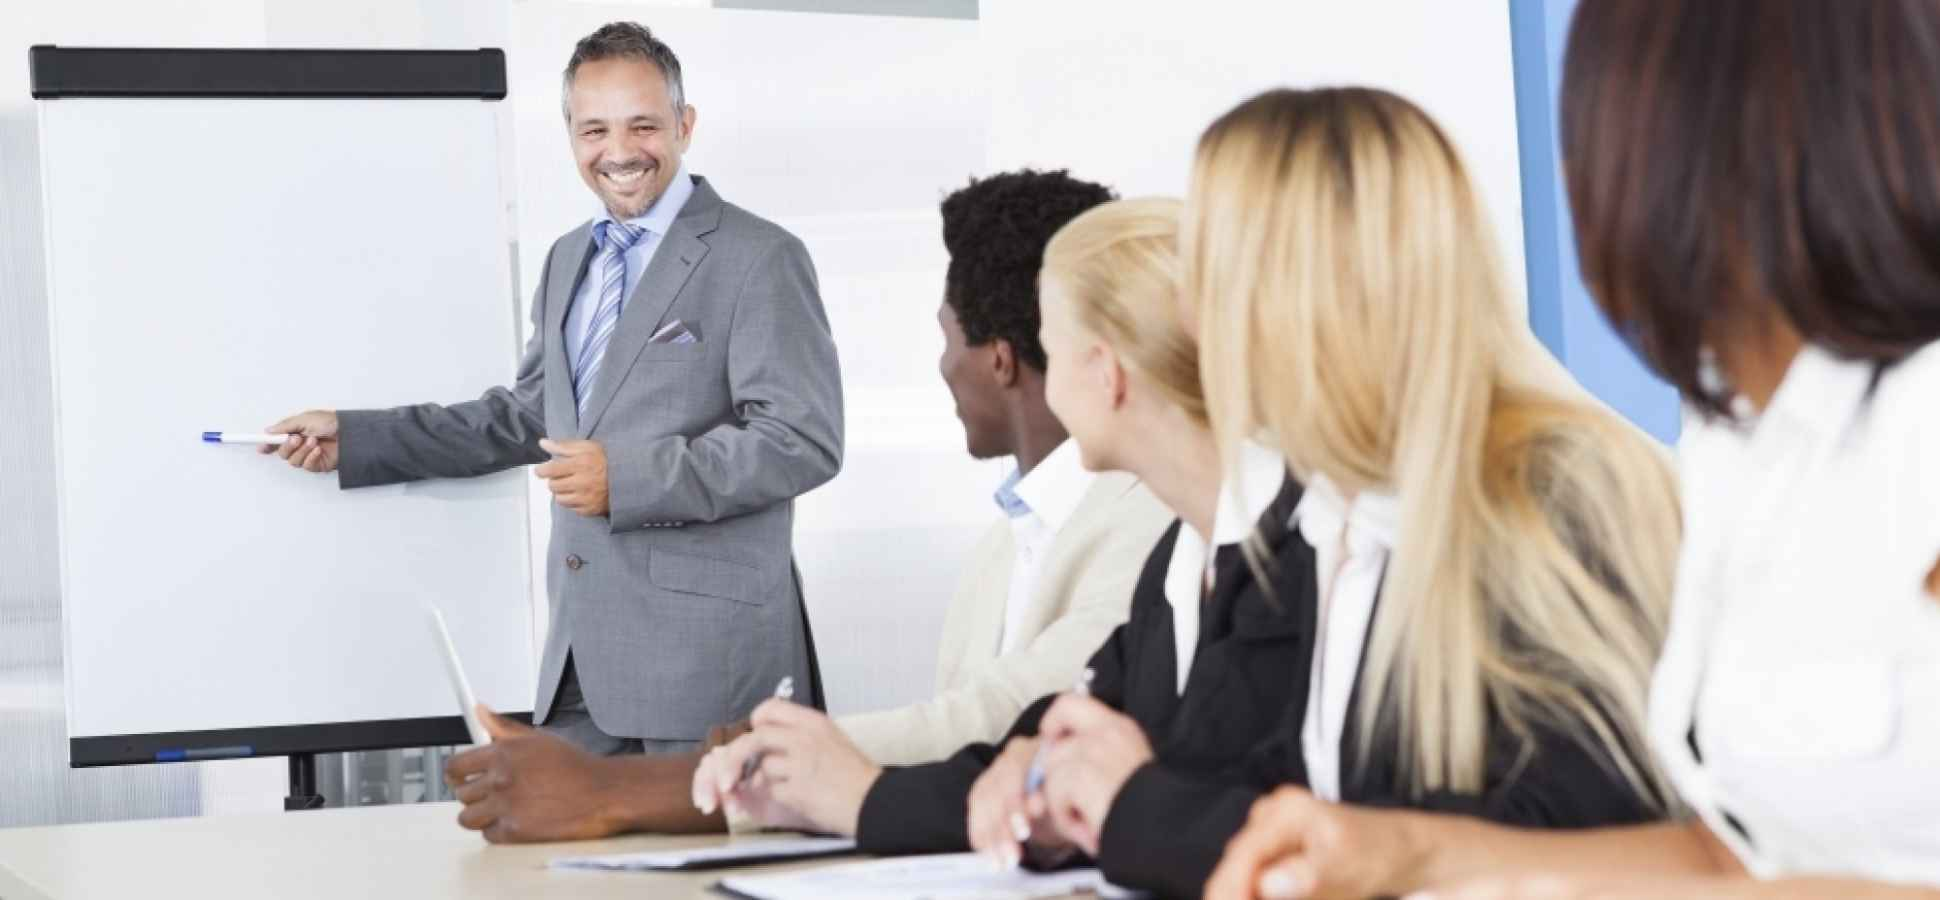 9 Important Things Leaders Do to Create Amazing Teams